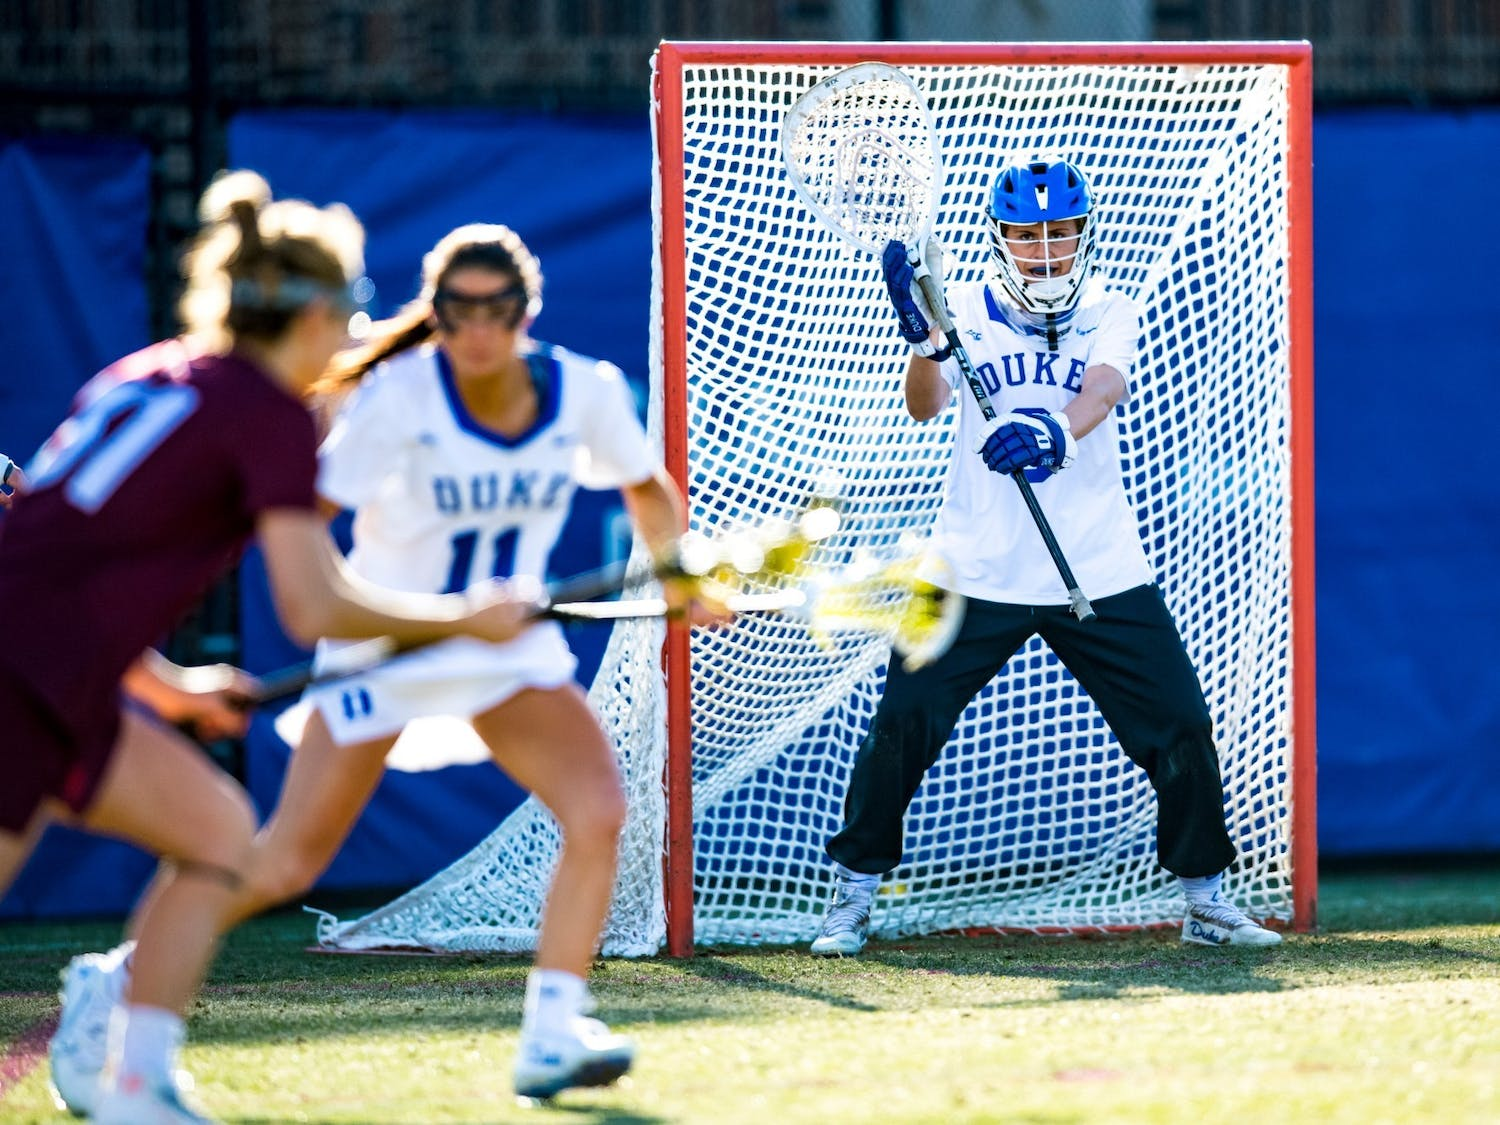 Junior goalie Sophia LeRose's 18 saves over the weekend helped Duke women's lacrosse advance to the Eilte Eight of the NCAA Championship for the first time since 2015.